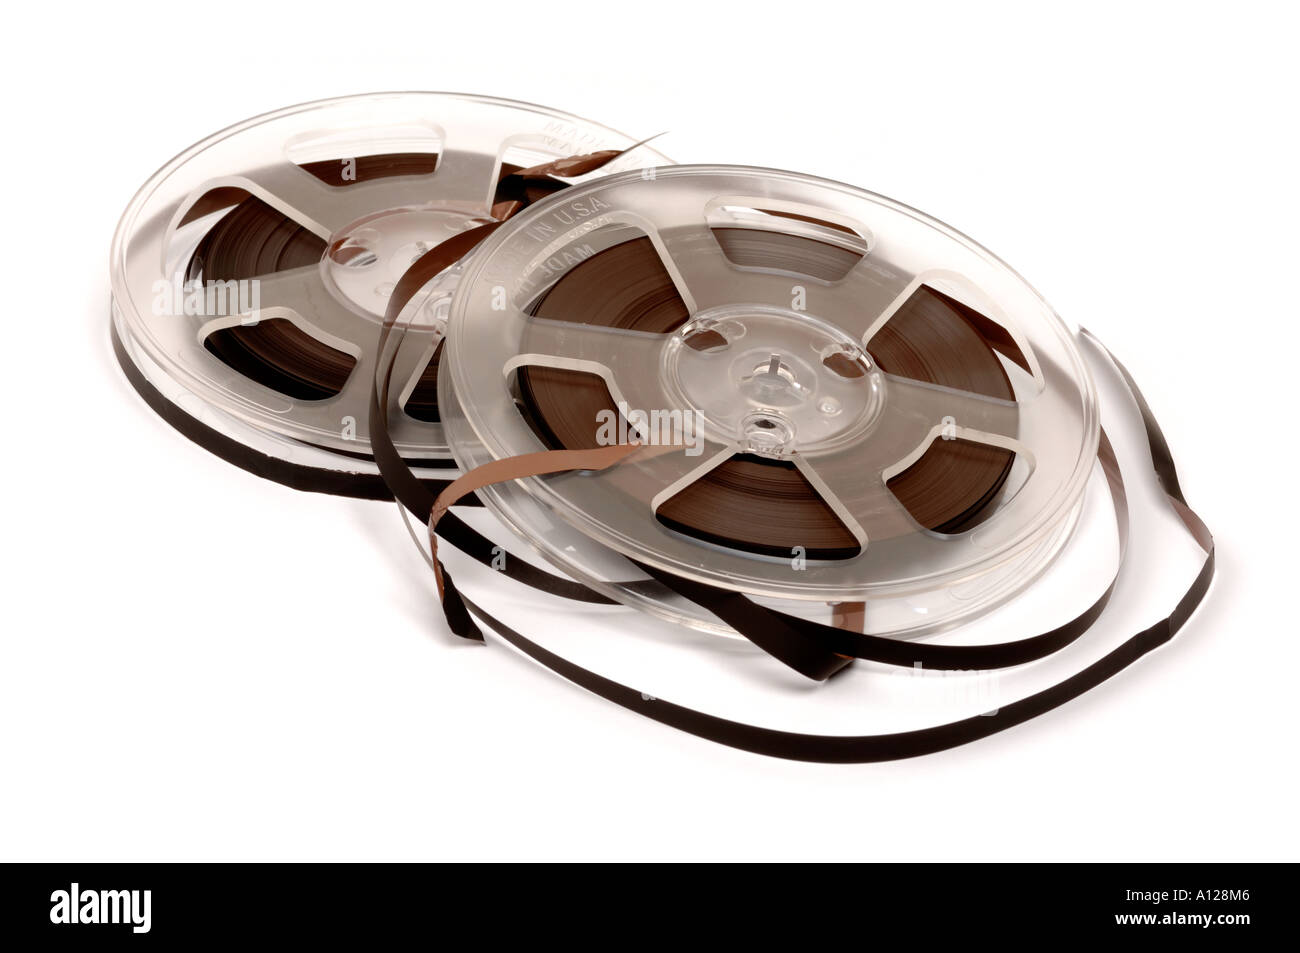 Two reels of audio tape - Stock Image